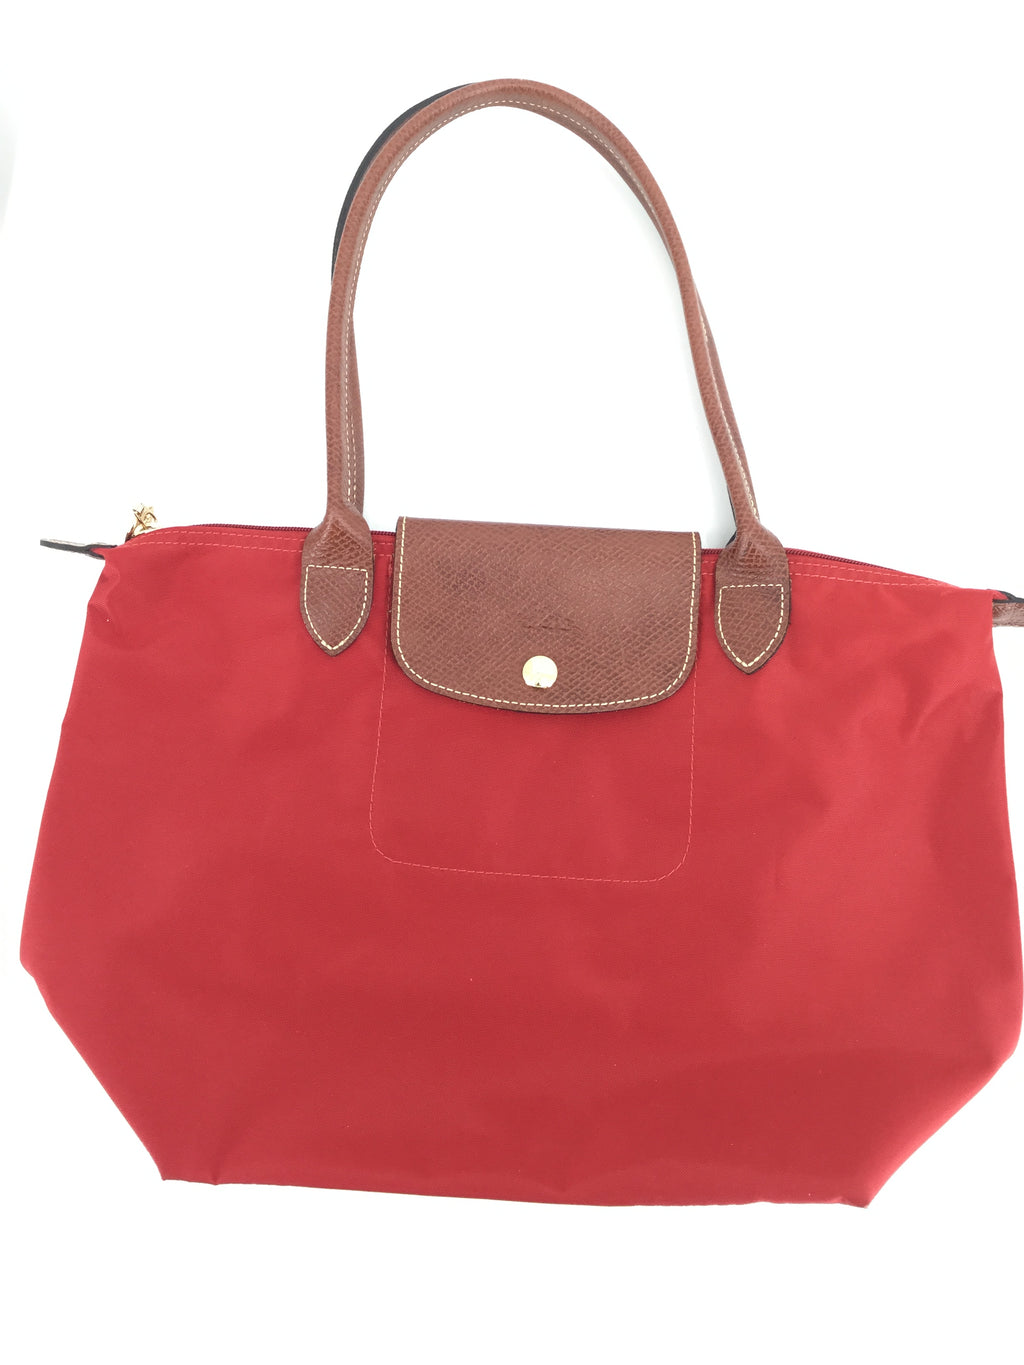 LONGCHAMP HANDBAG SIZE:MEDIUM